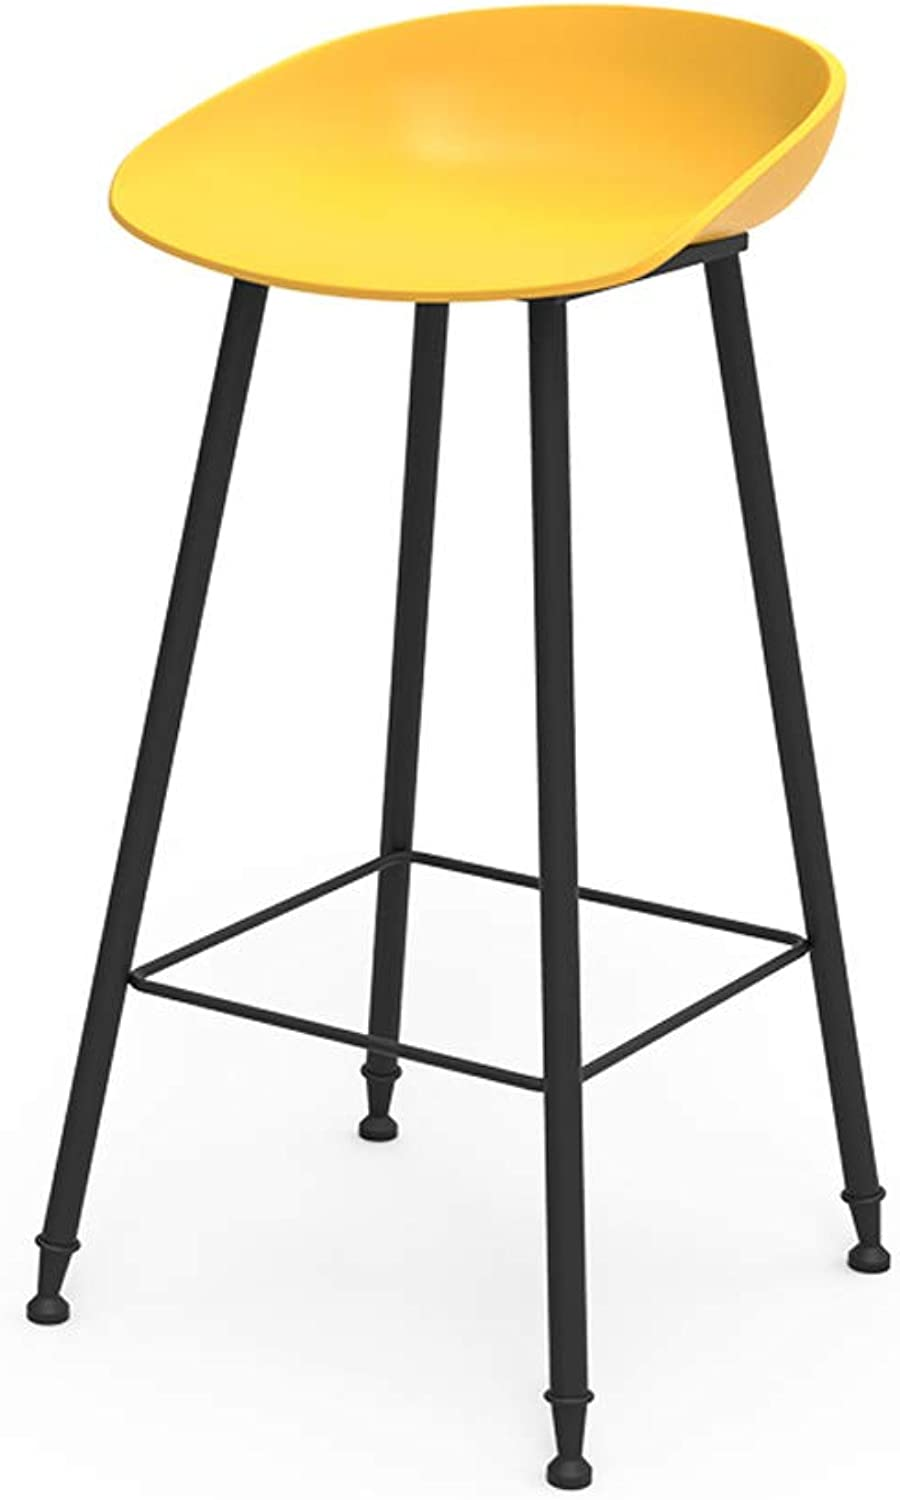 Bar Stool Pub - Height Kitchen Bar Stool with PU Cushion, Indoor Outdoor (Size   45cm-17.7in)